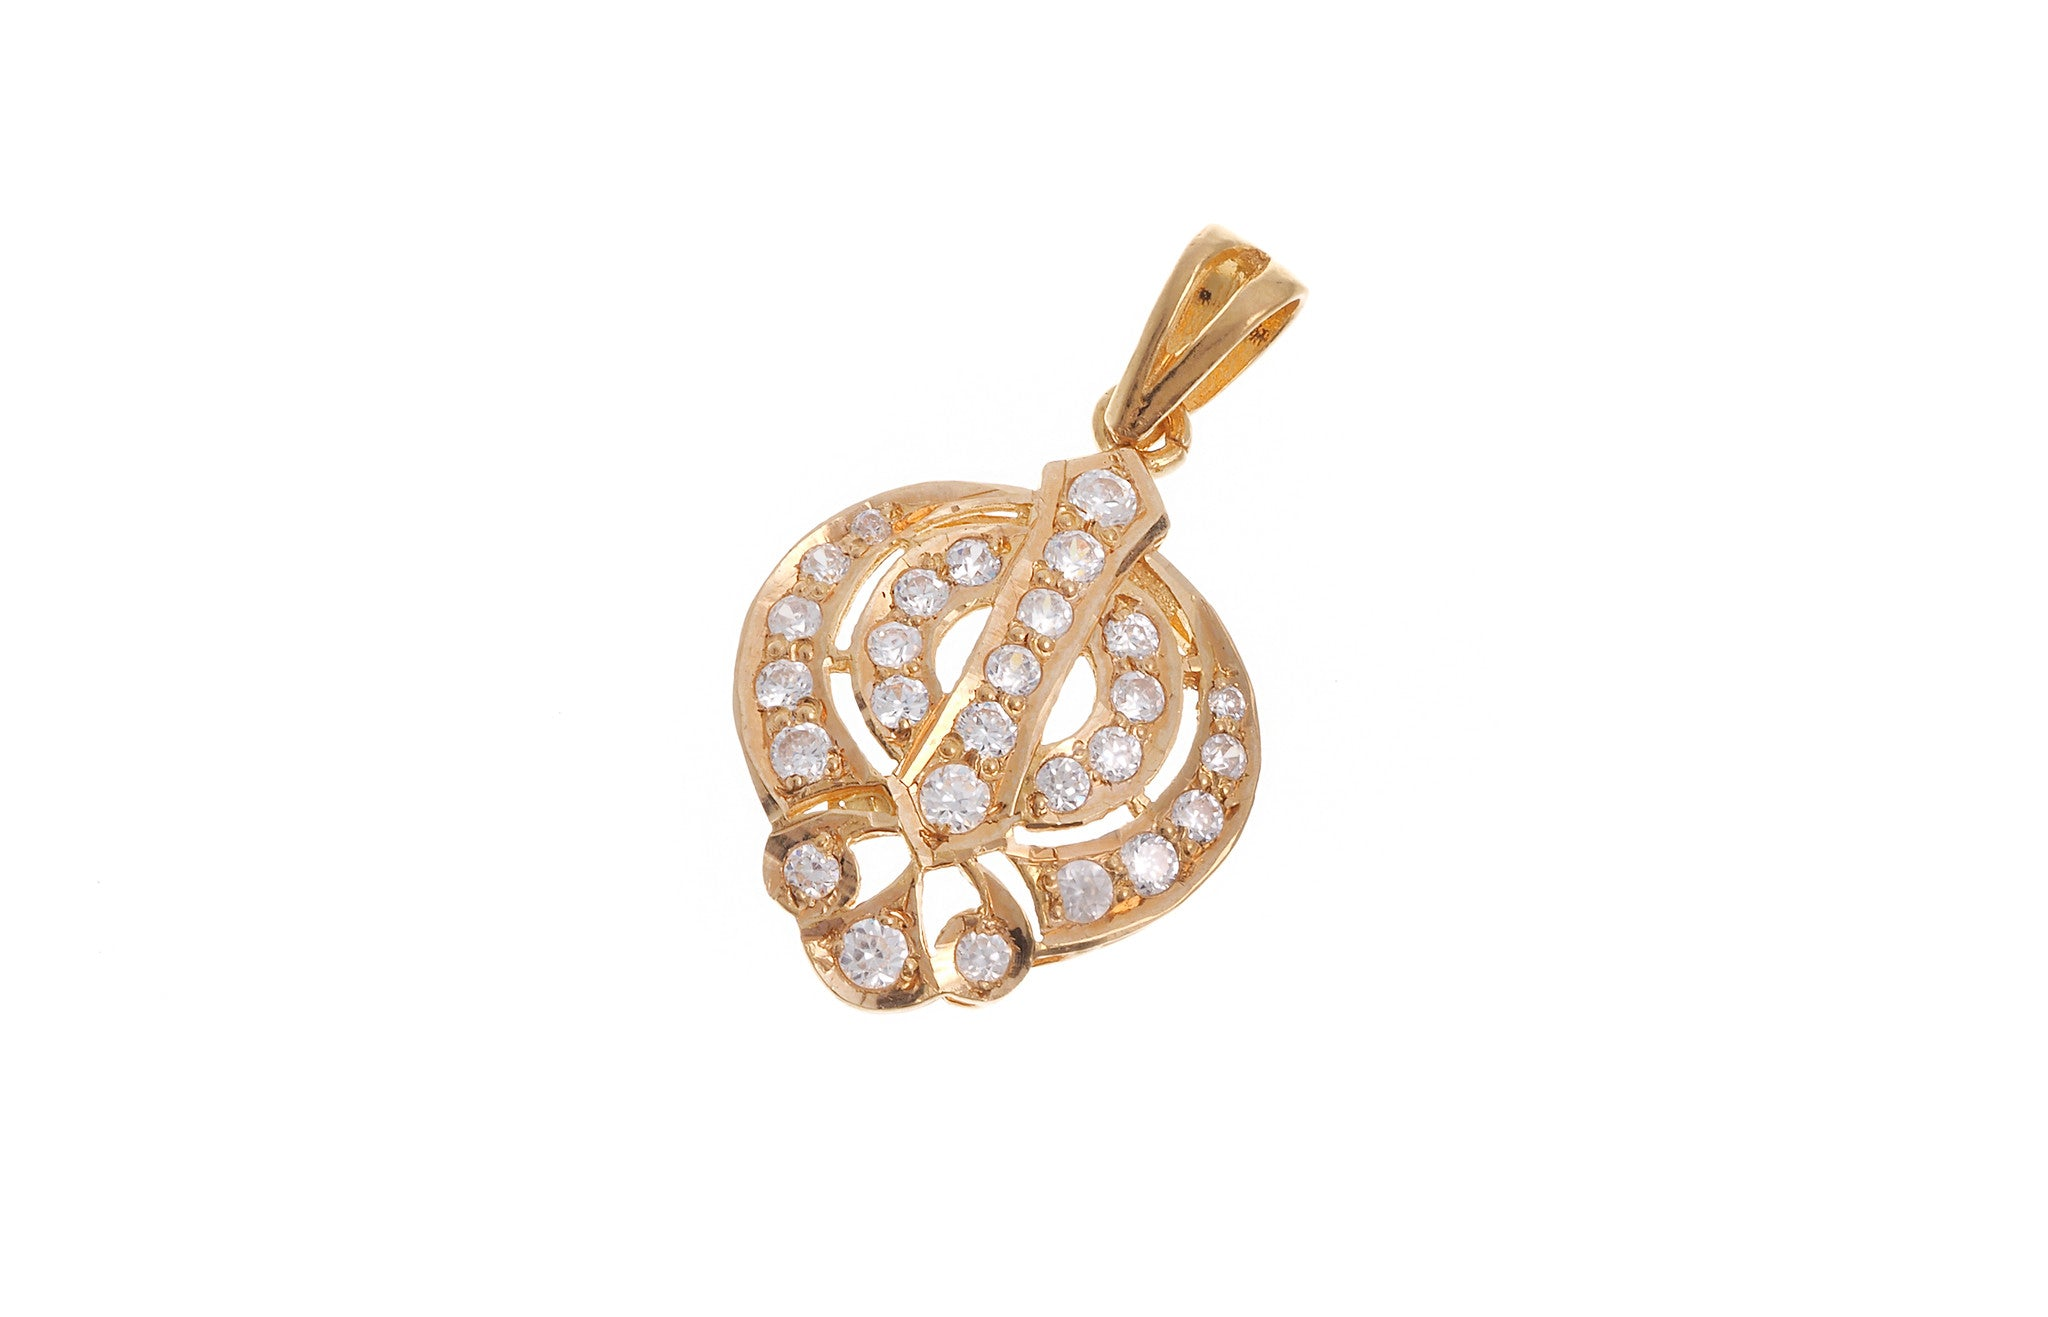 22ct Yellow Gold Cubic Zirconia Khanda Pendant (G5602), Minar Jewellers - 1